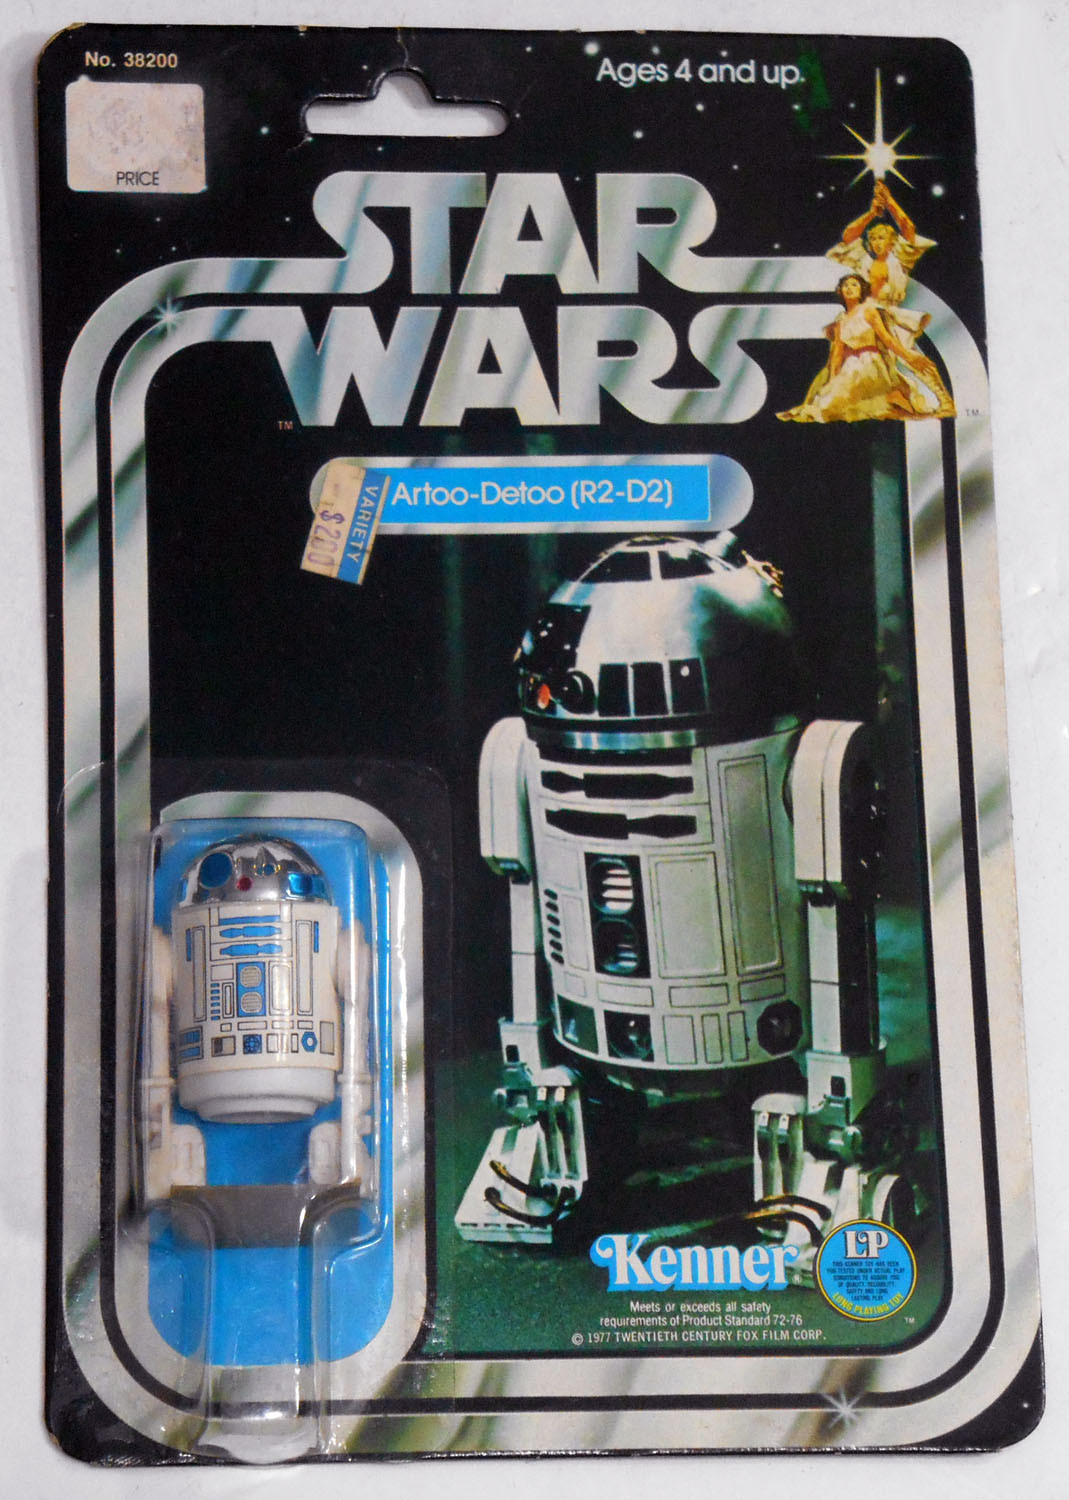 Kenner Star Wars Toys : The top vintage star wars action figures fromkenner